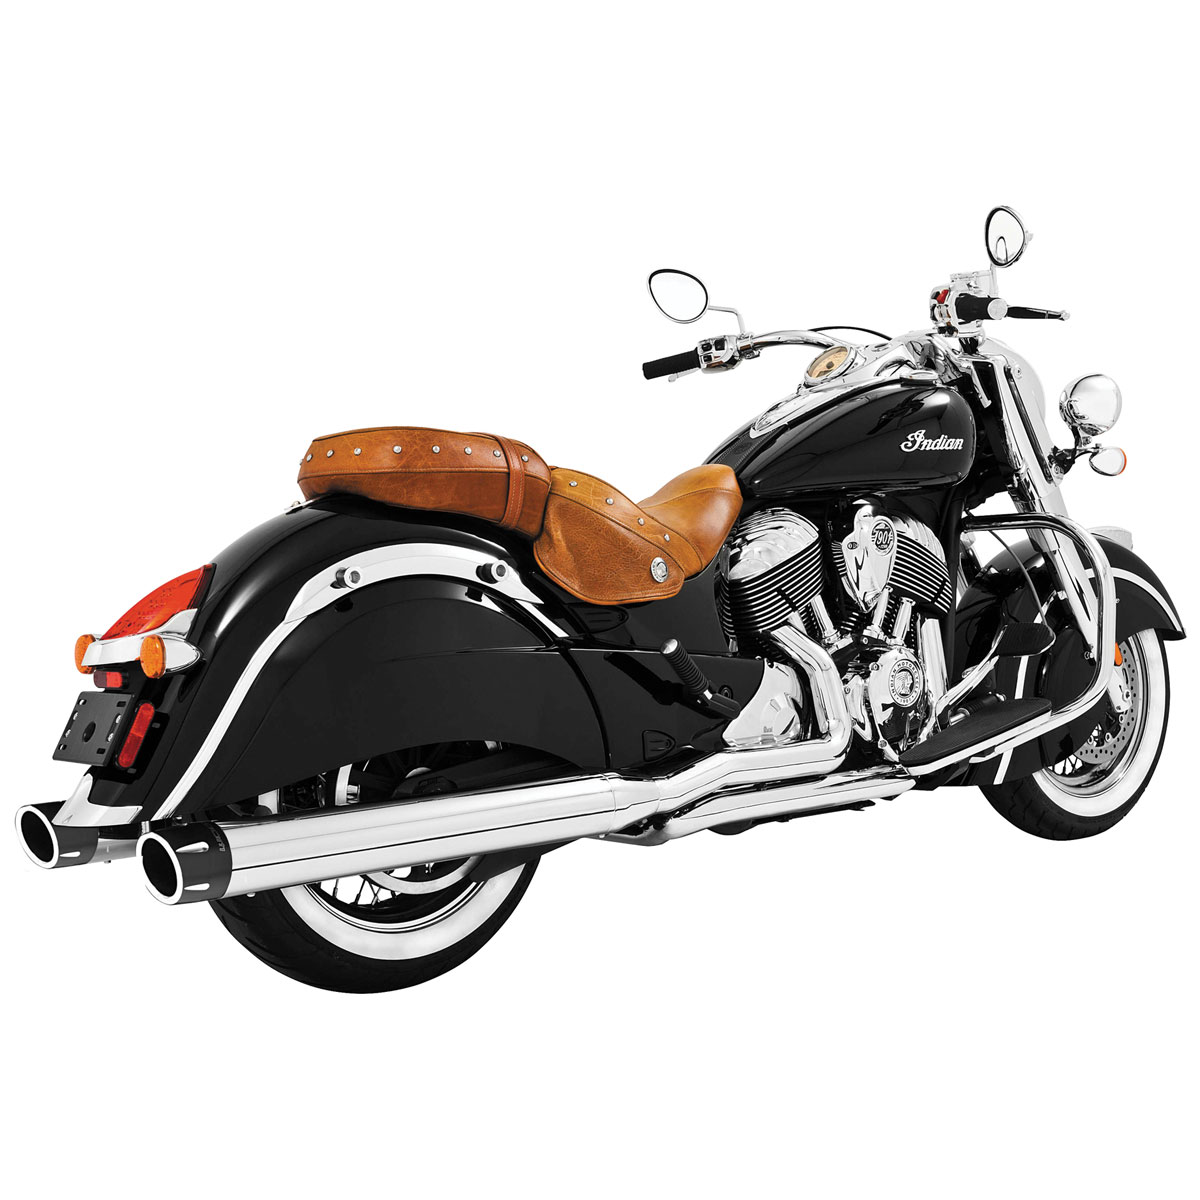 Freedom Performance Exhaust Combat Slip-On Mufflers, Chrome with Black Tip